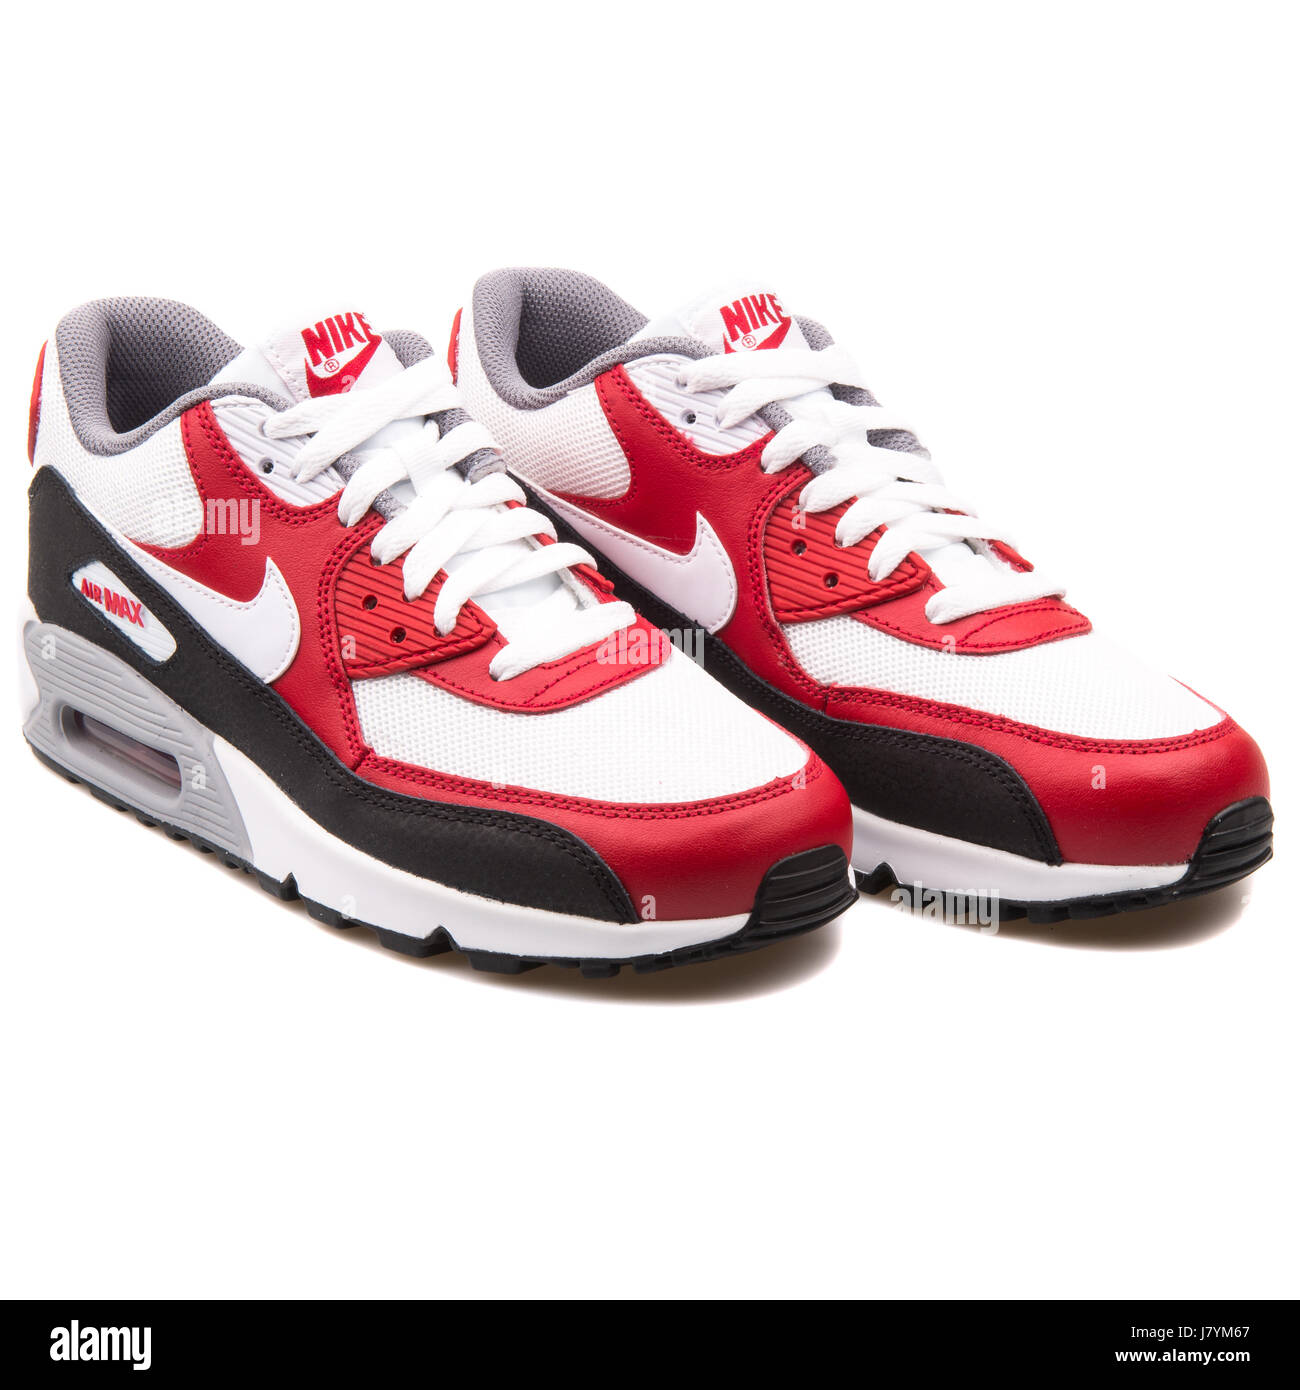 38f889068de6c Nike Air Max 90 Mesh (GS) Red White and Black Youth Sports Sneakers -  724824-102